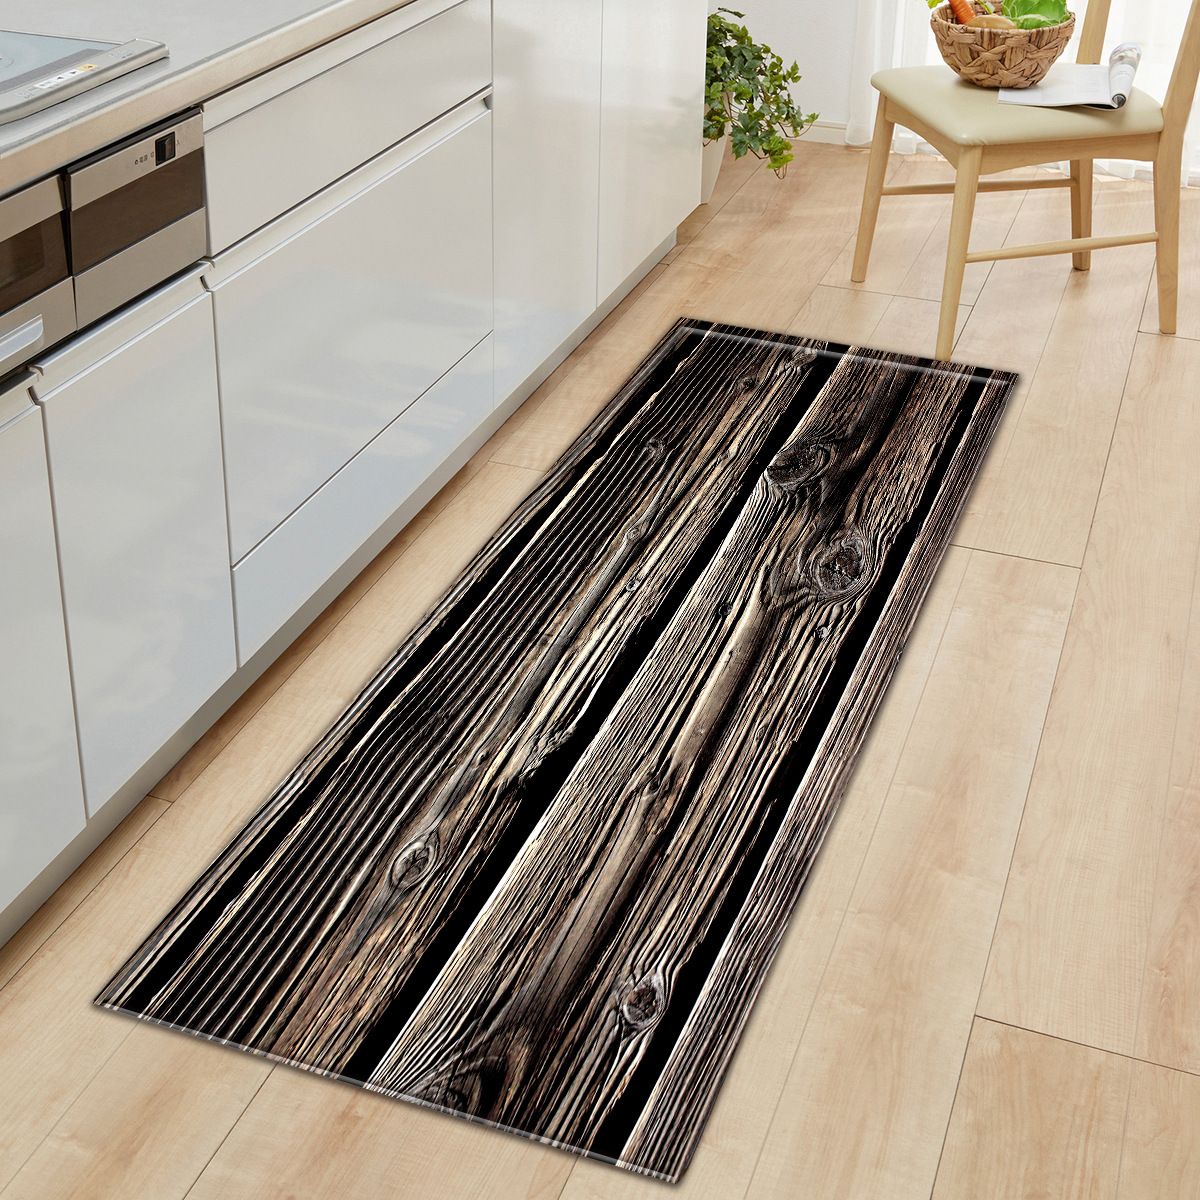 12 Styles Anti-slip Modern Kitchen Rugs Wood Grain Pattern Floor Carpet For Living Room Washable Doormat Bedroom Mat Home Decor